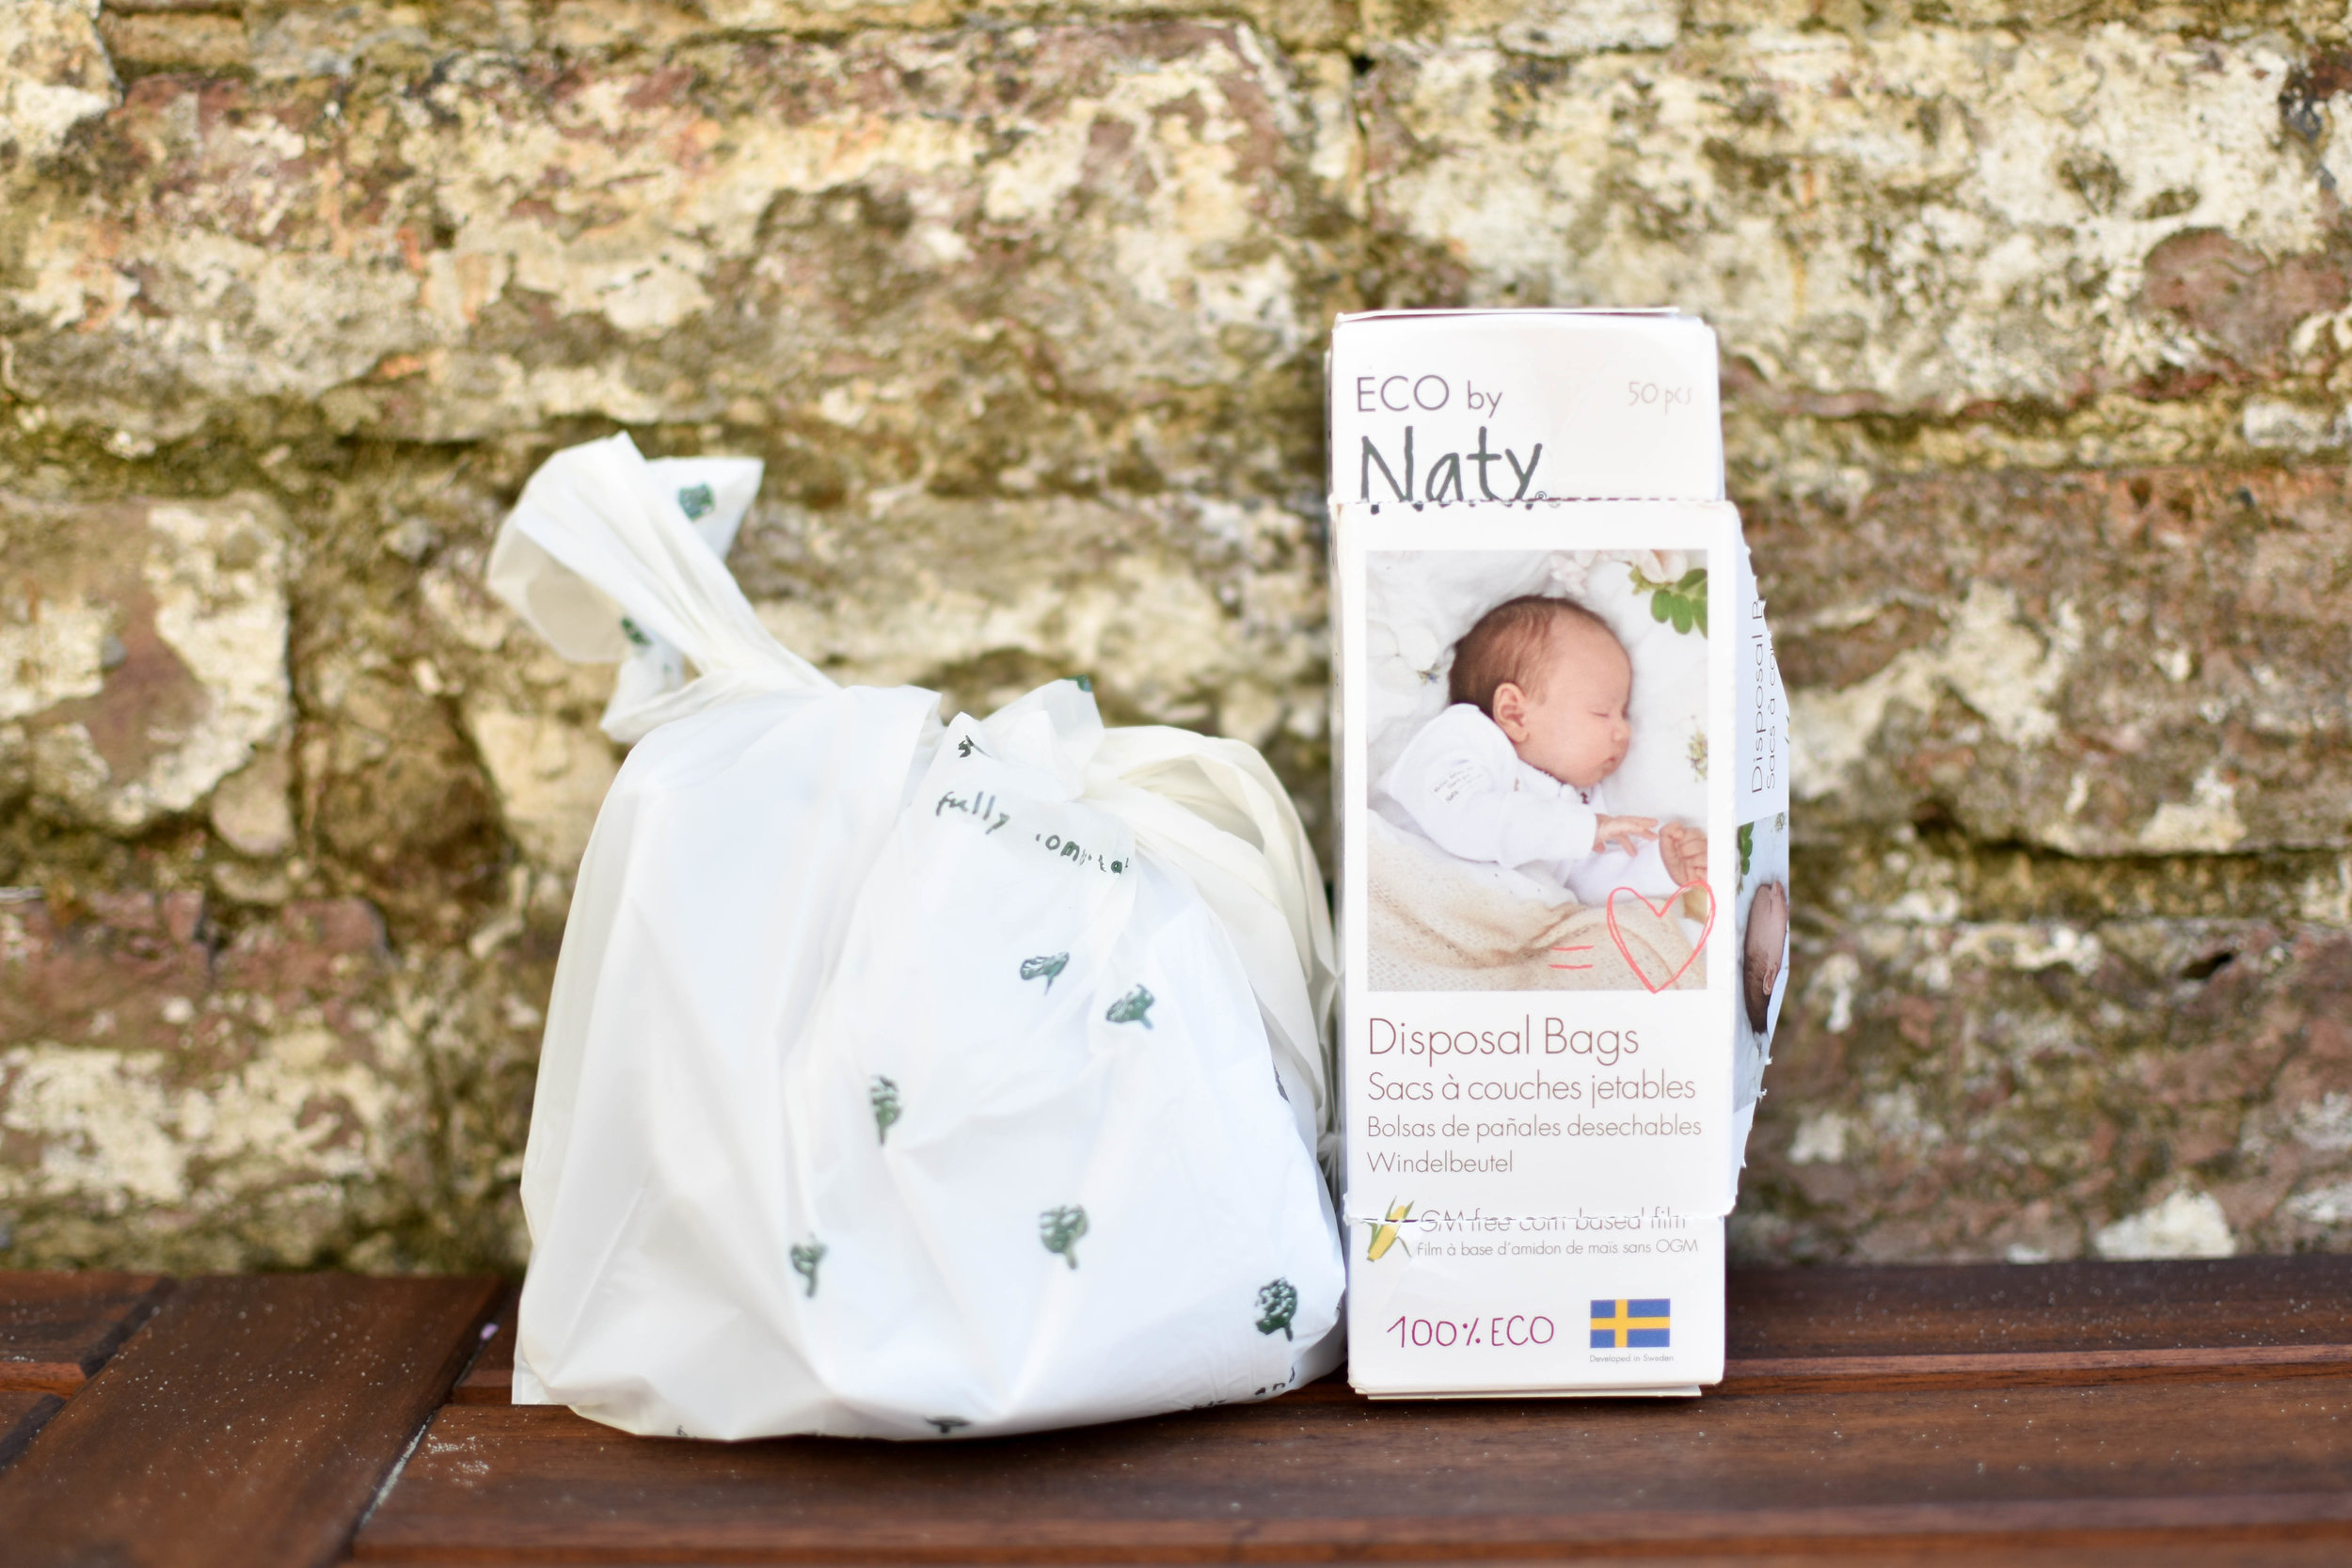 natty-nappy-sacks-bags-plastic-free-support-local-magazine .jpg